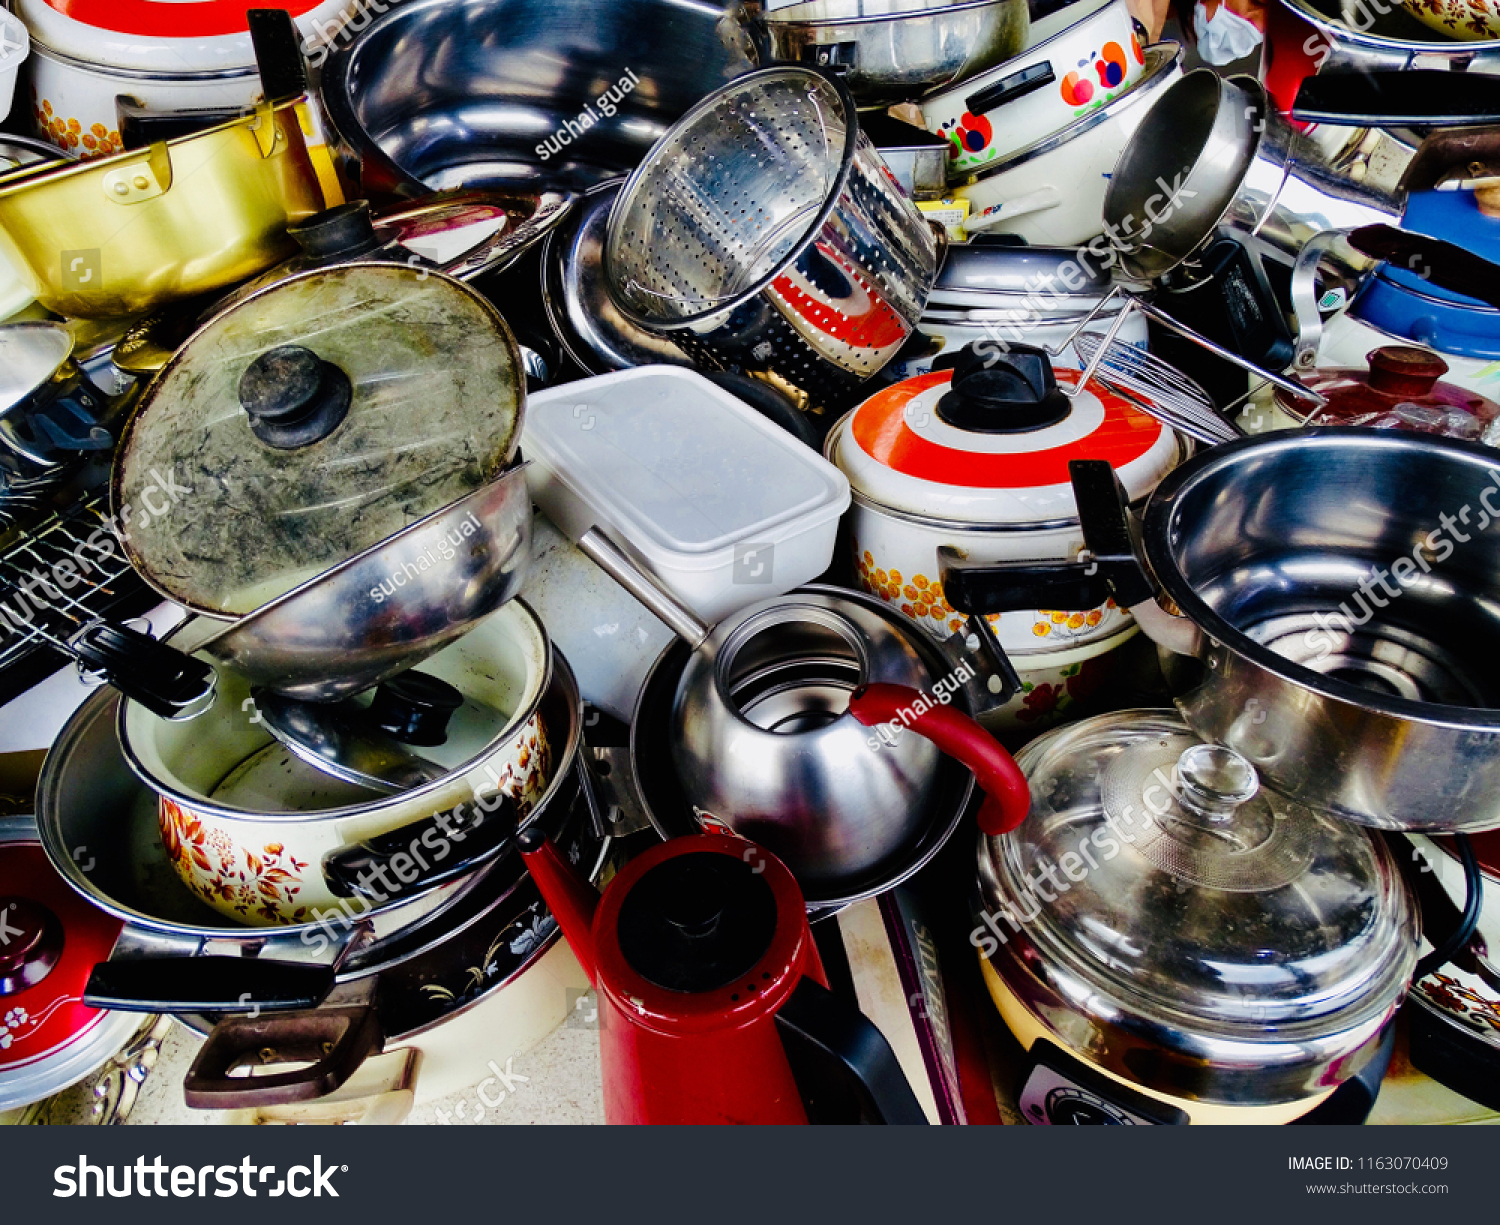 Kitchenware Shop Kitchenware Background Cookware Not Organized Old Stock Photo